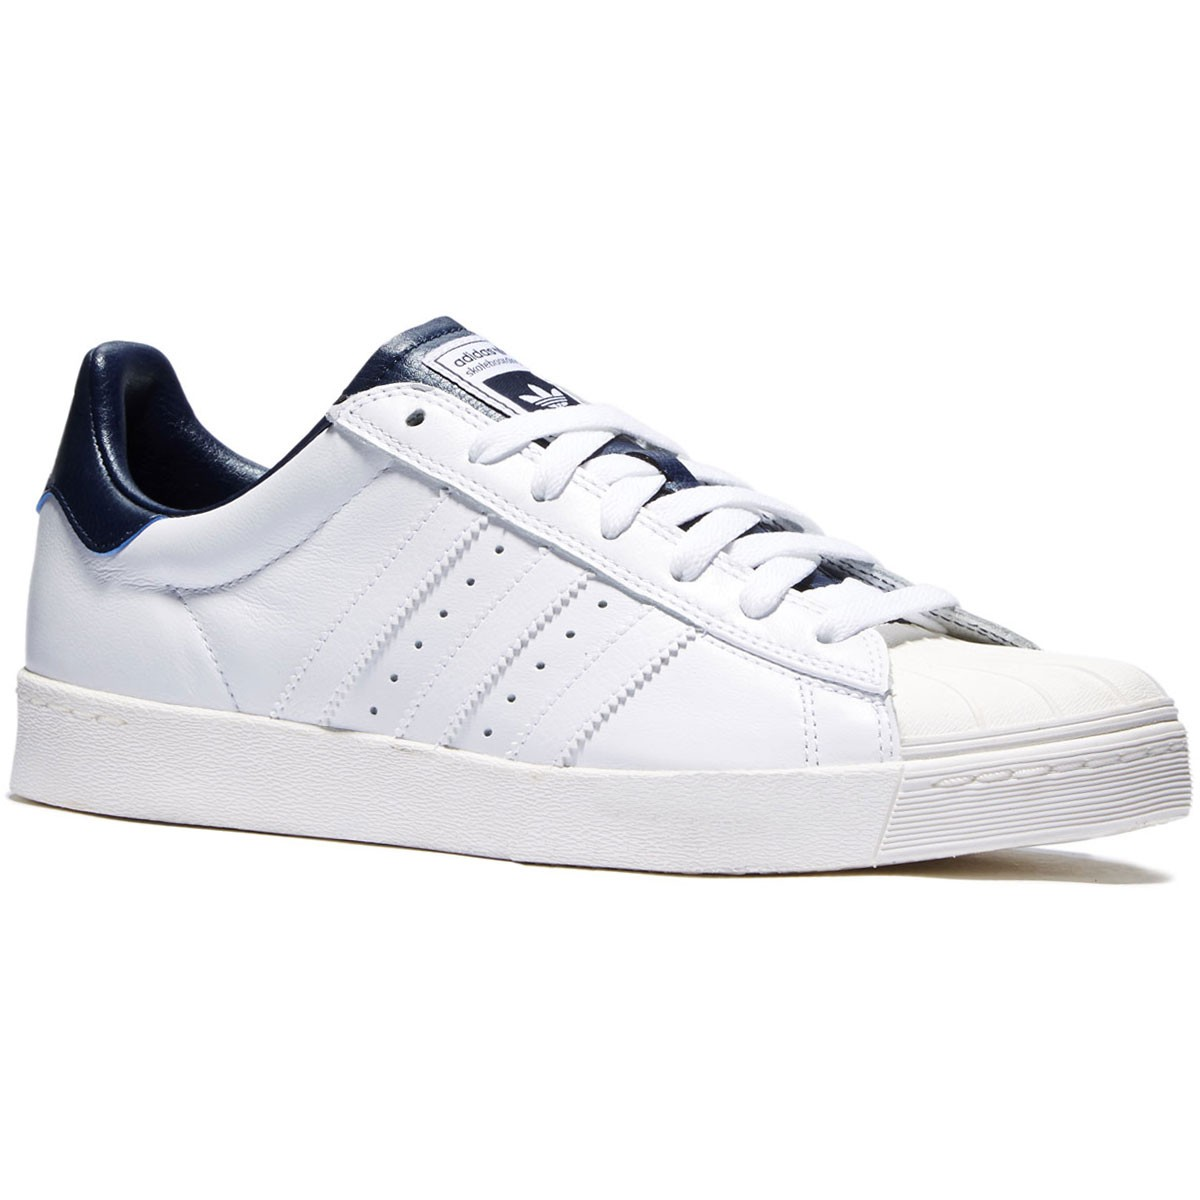 Adidas Men's Superstar Vulc Adv Black/ftwwht/black